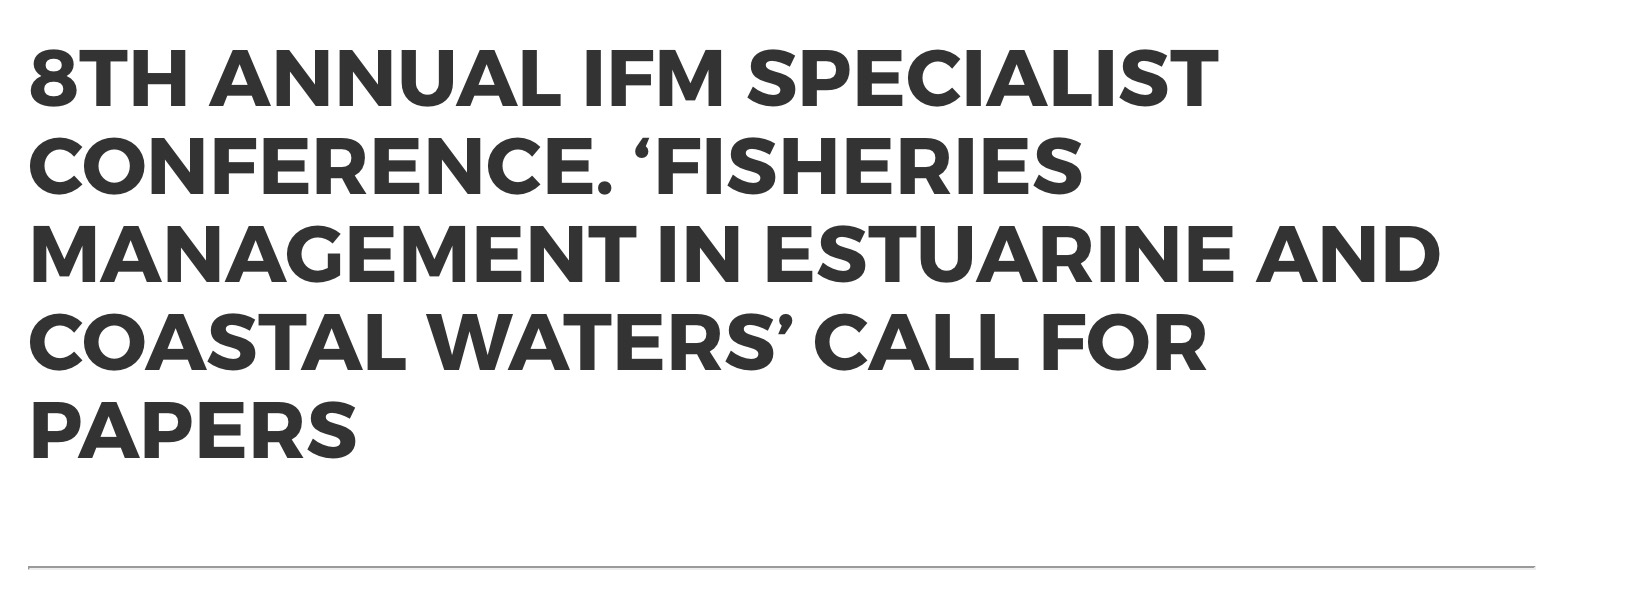 8TH ANNUAL IFM SPECIALIST CONFERENCE  'FISHERIES MANAGEMENT IN